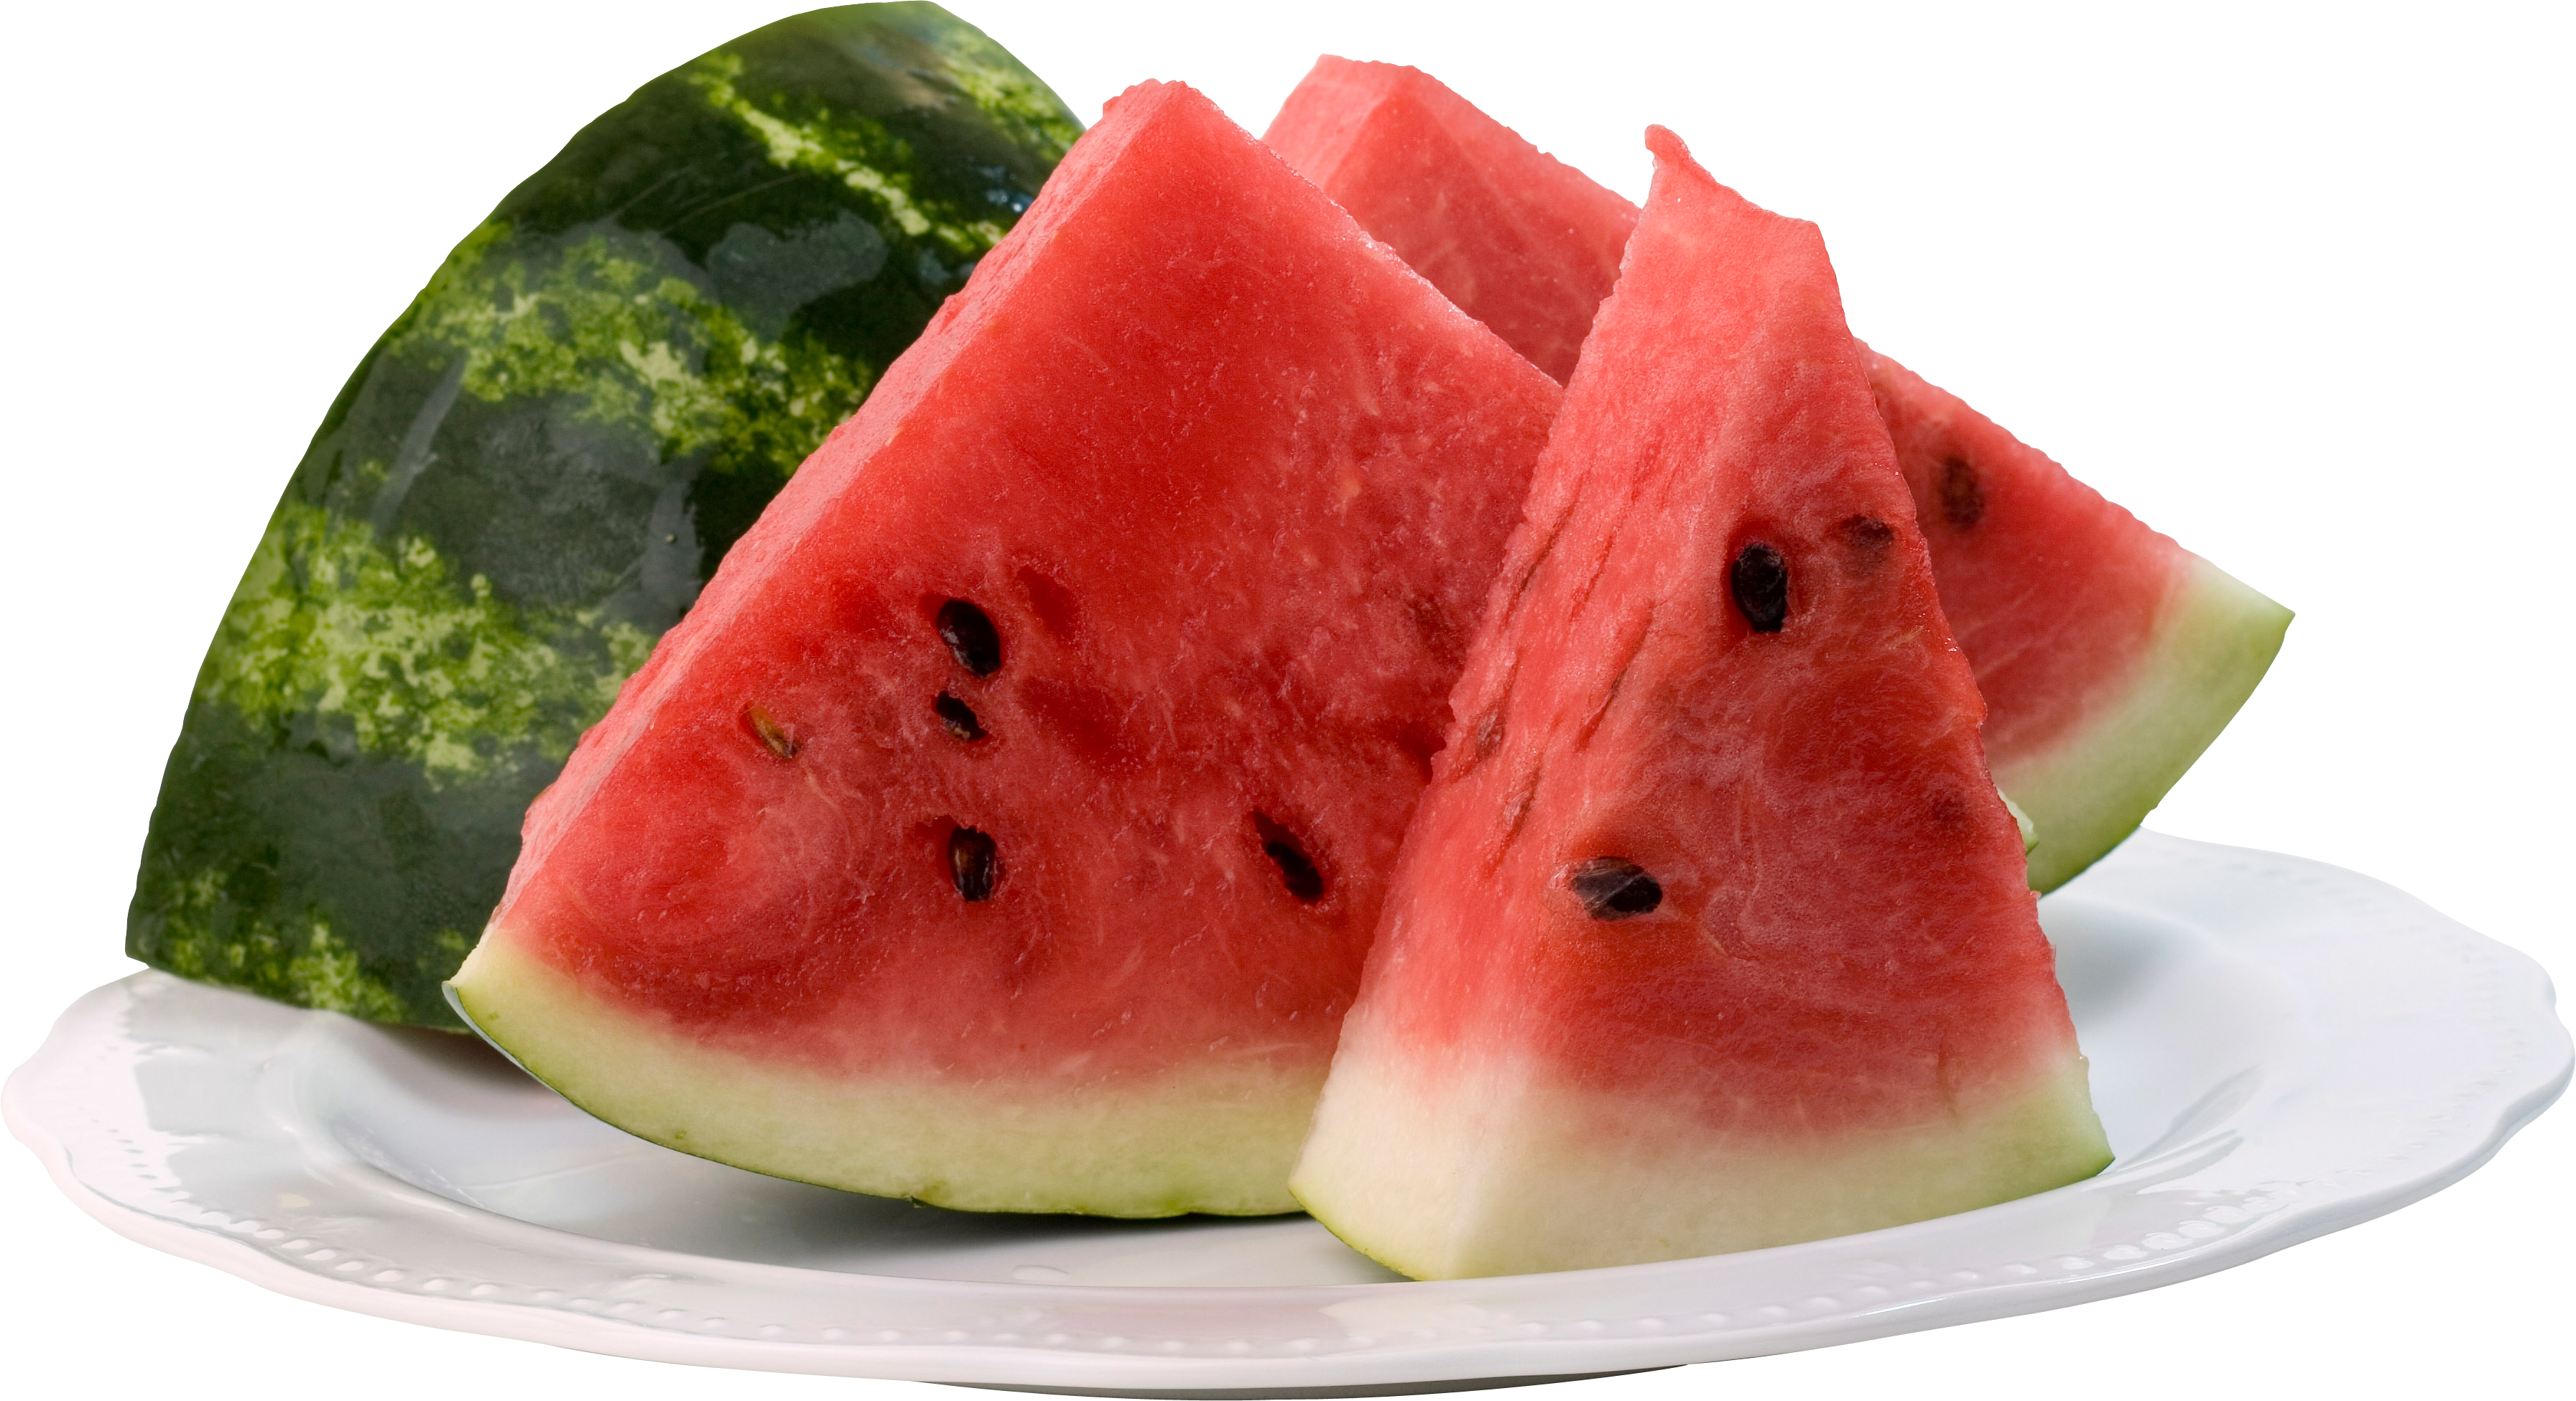 Png watermelon. Images free download image